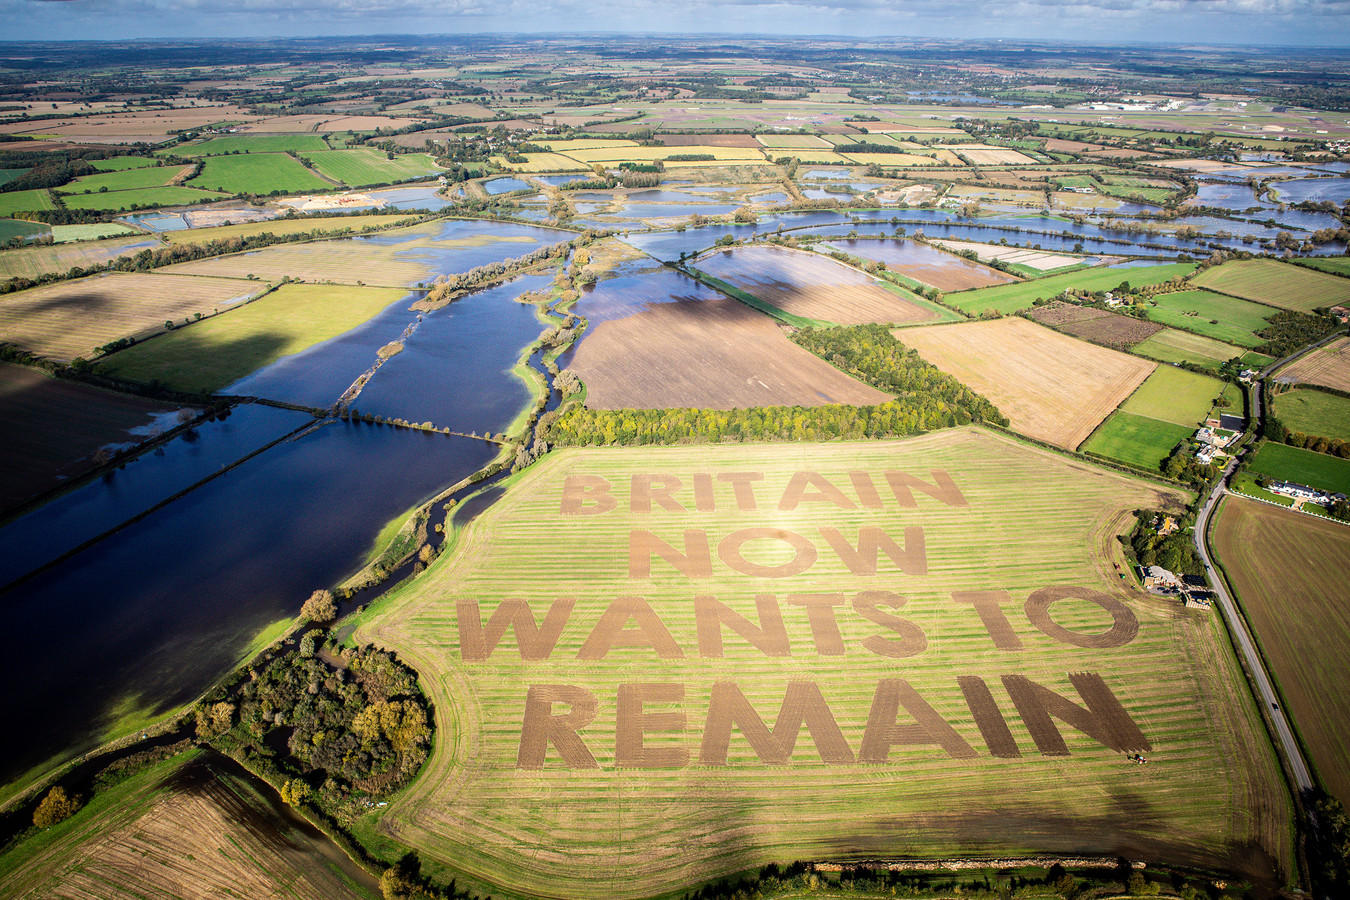 """The words """"Britain now wants to remain"""" cut by anti-Brexit group Led By Donkeys are seen in a field near Swindon, county Wiltshire, Britain October 16, 2019. Picture taken October 16, 2019. Led By Donkeys/via REUTERS THIS IMAGE HAS BEEN SUPPLIED BY A THIRD PARTY. MANDATORY CREDIT"""